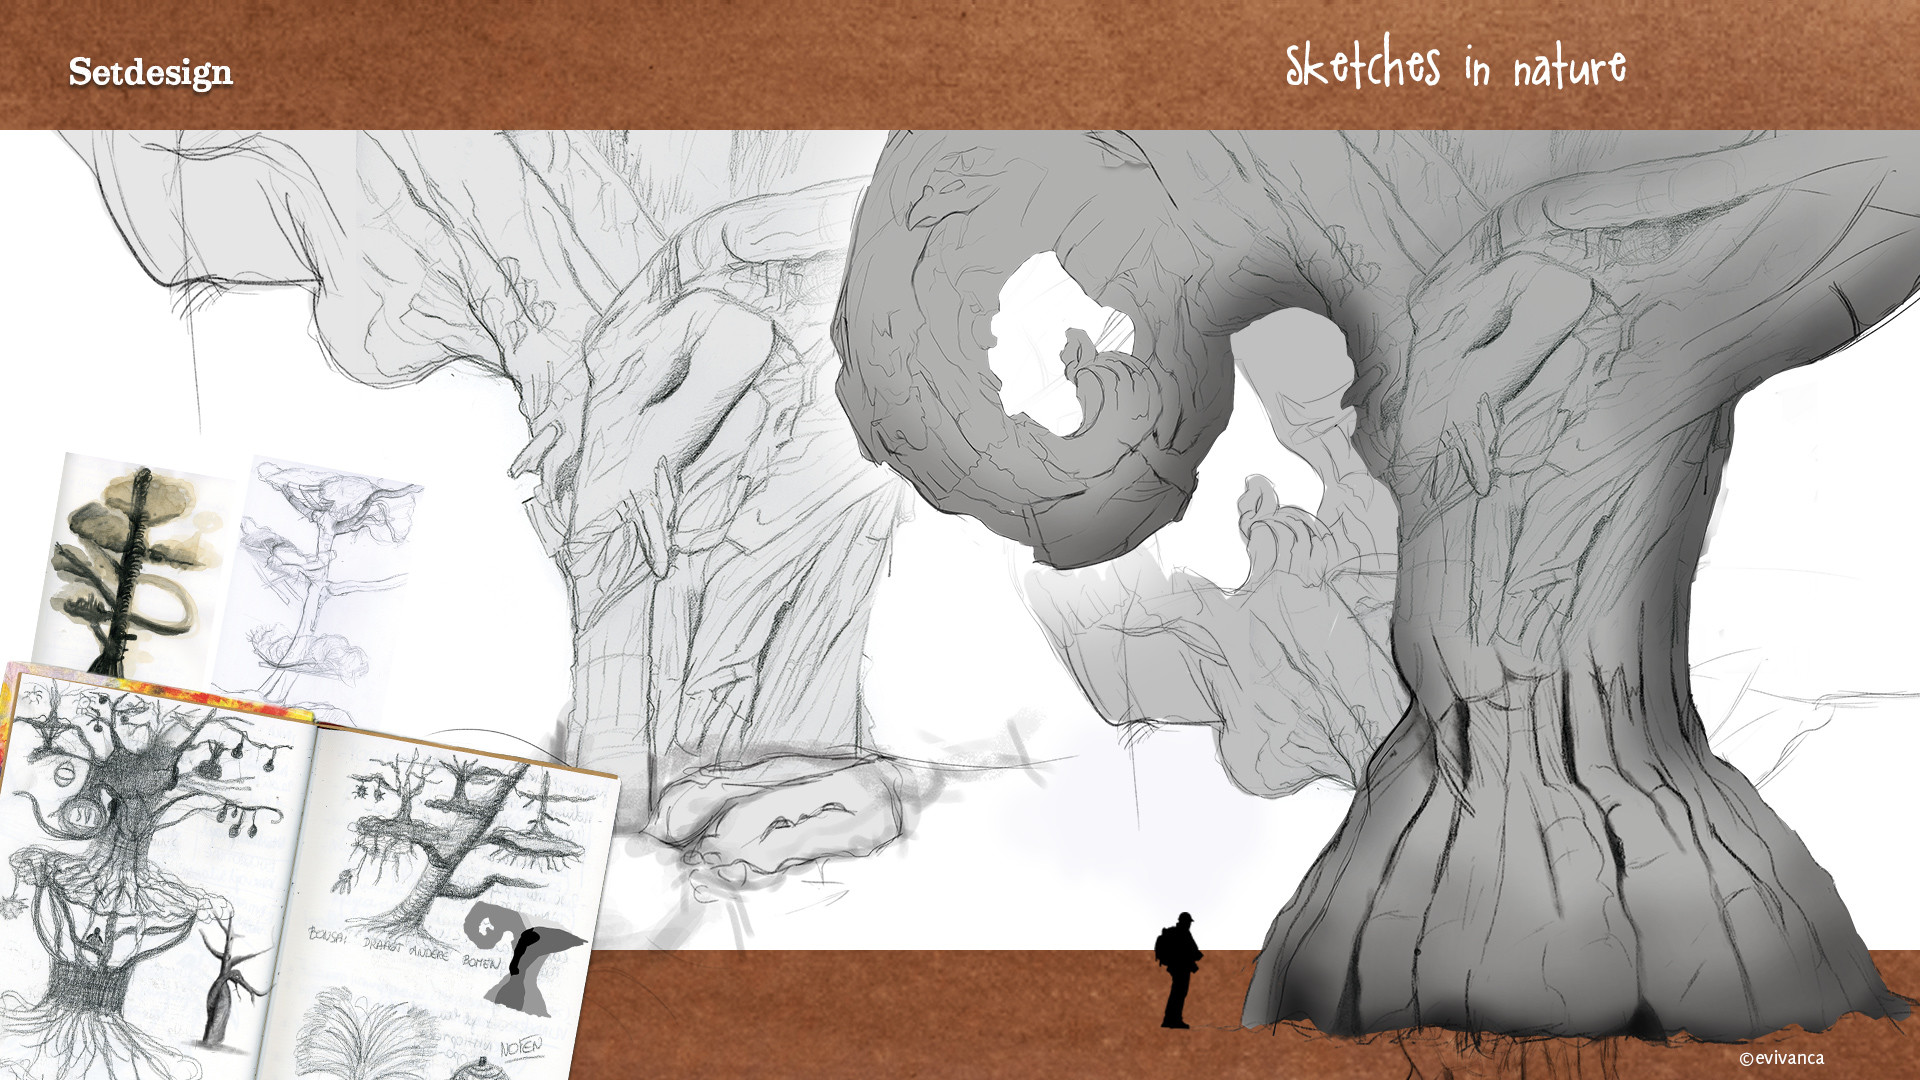 Evi vanca evivanca setdesign sketchesnature